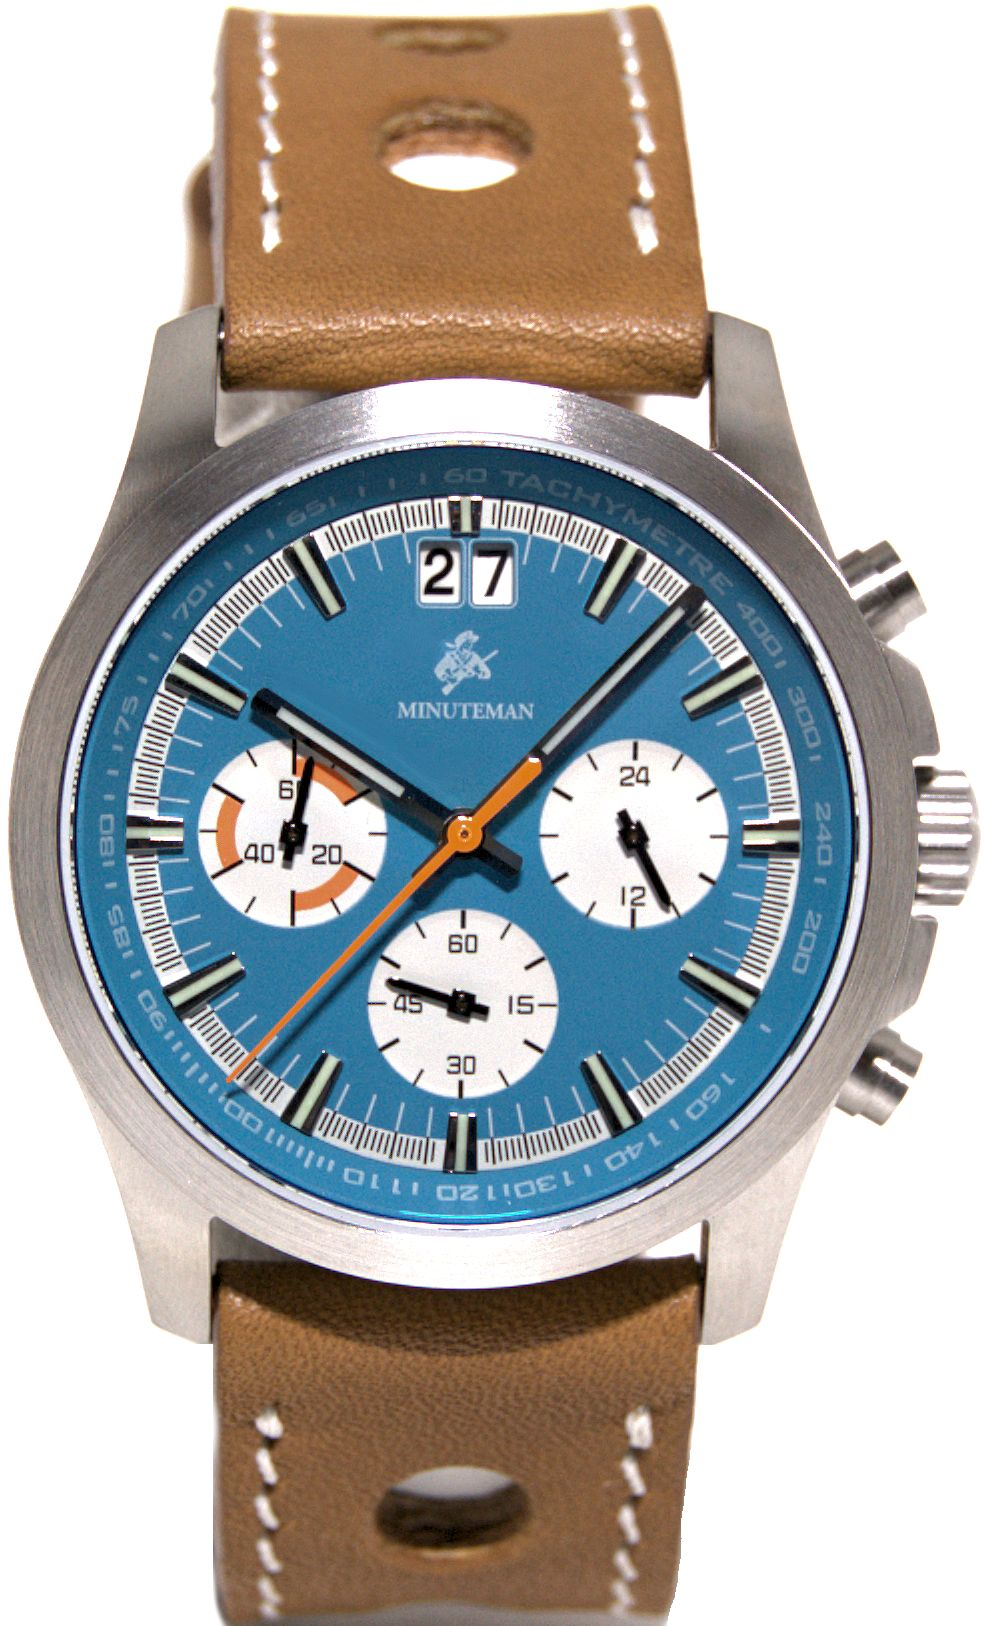 Minuteman Parker Chronograph Watch Brown Leather Strap Brushed  Blue Dial